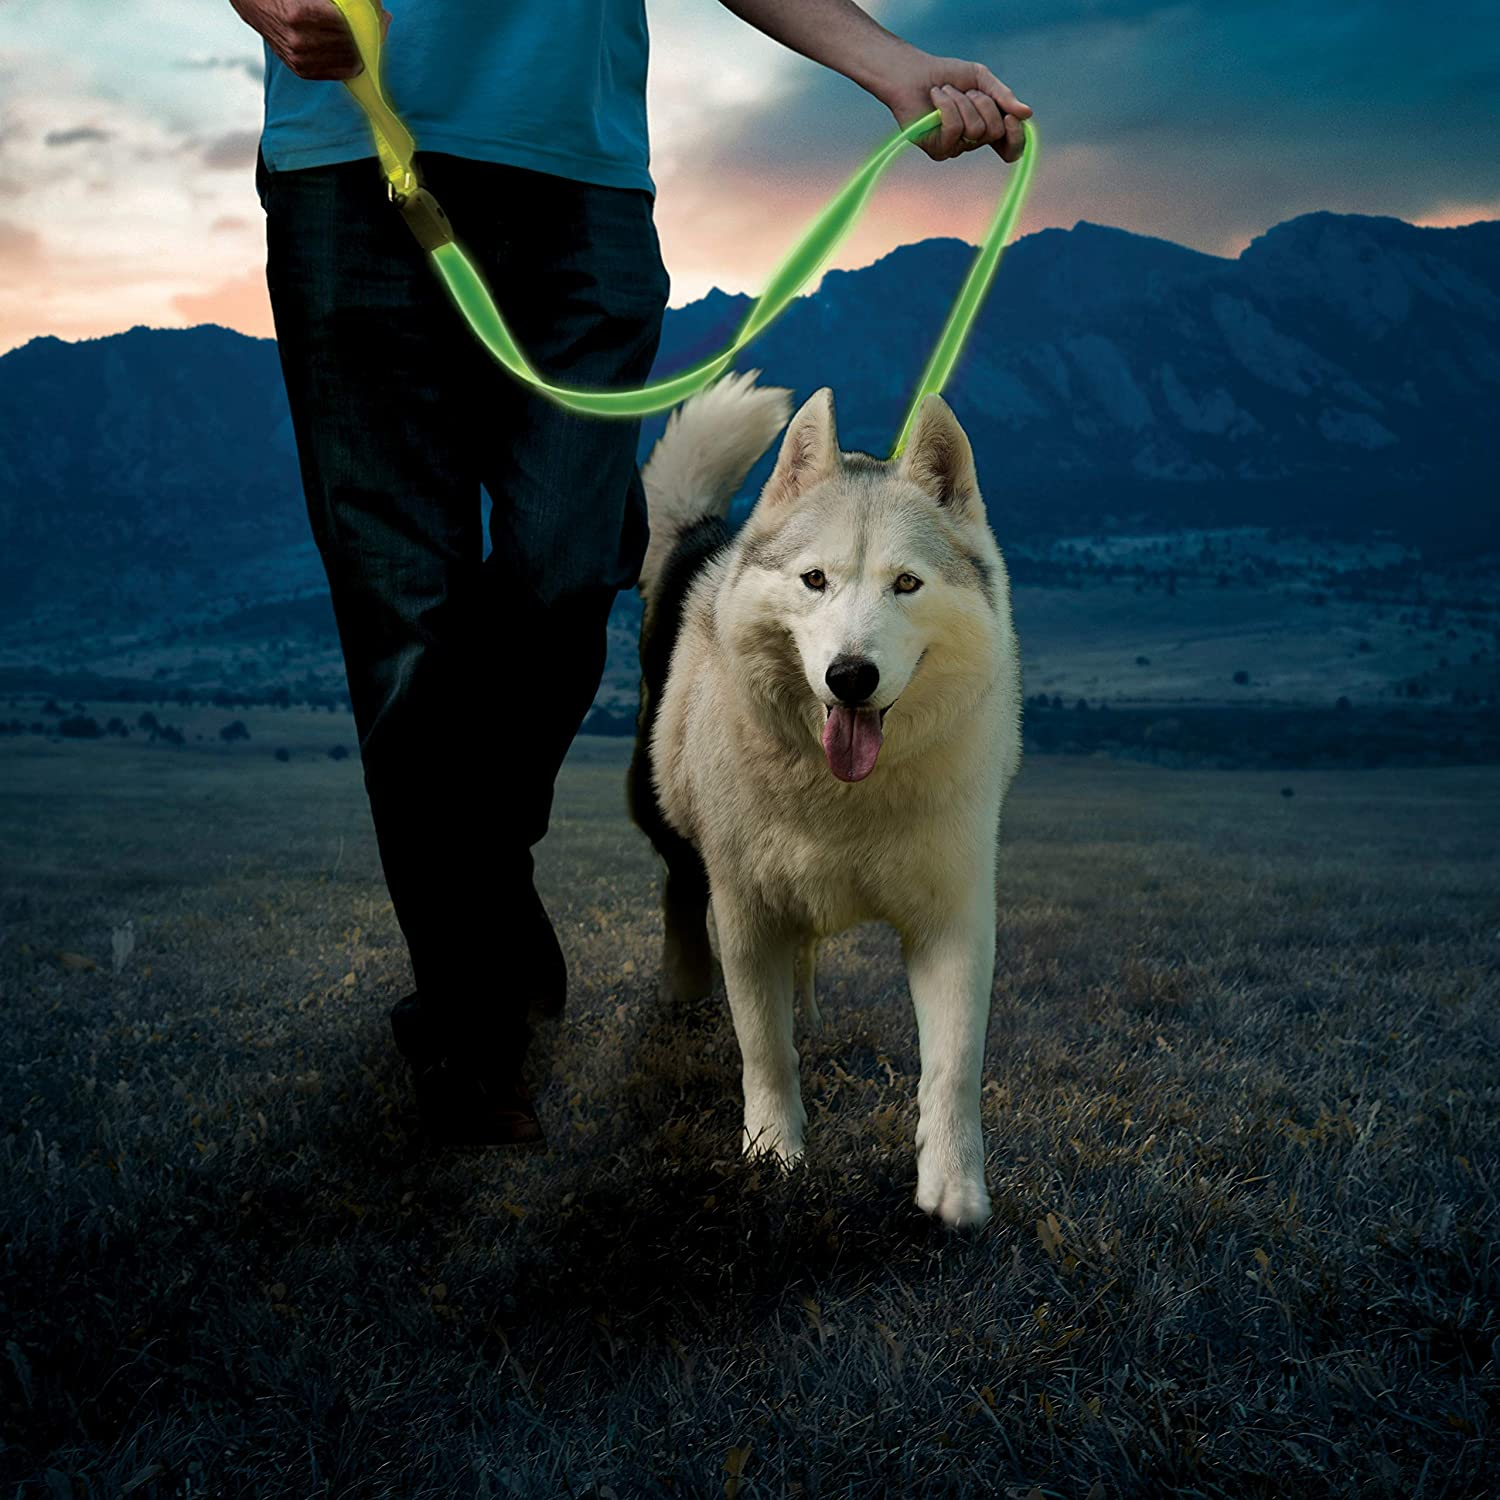 Husky being walked on LED leash